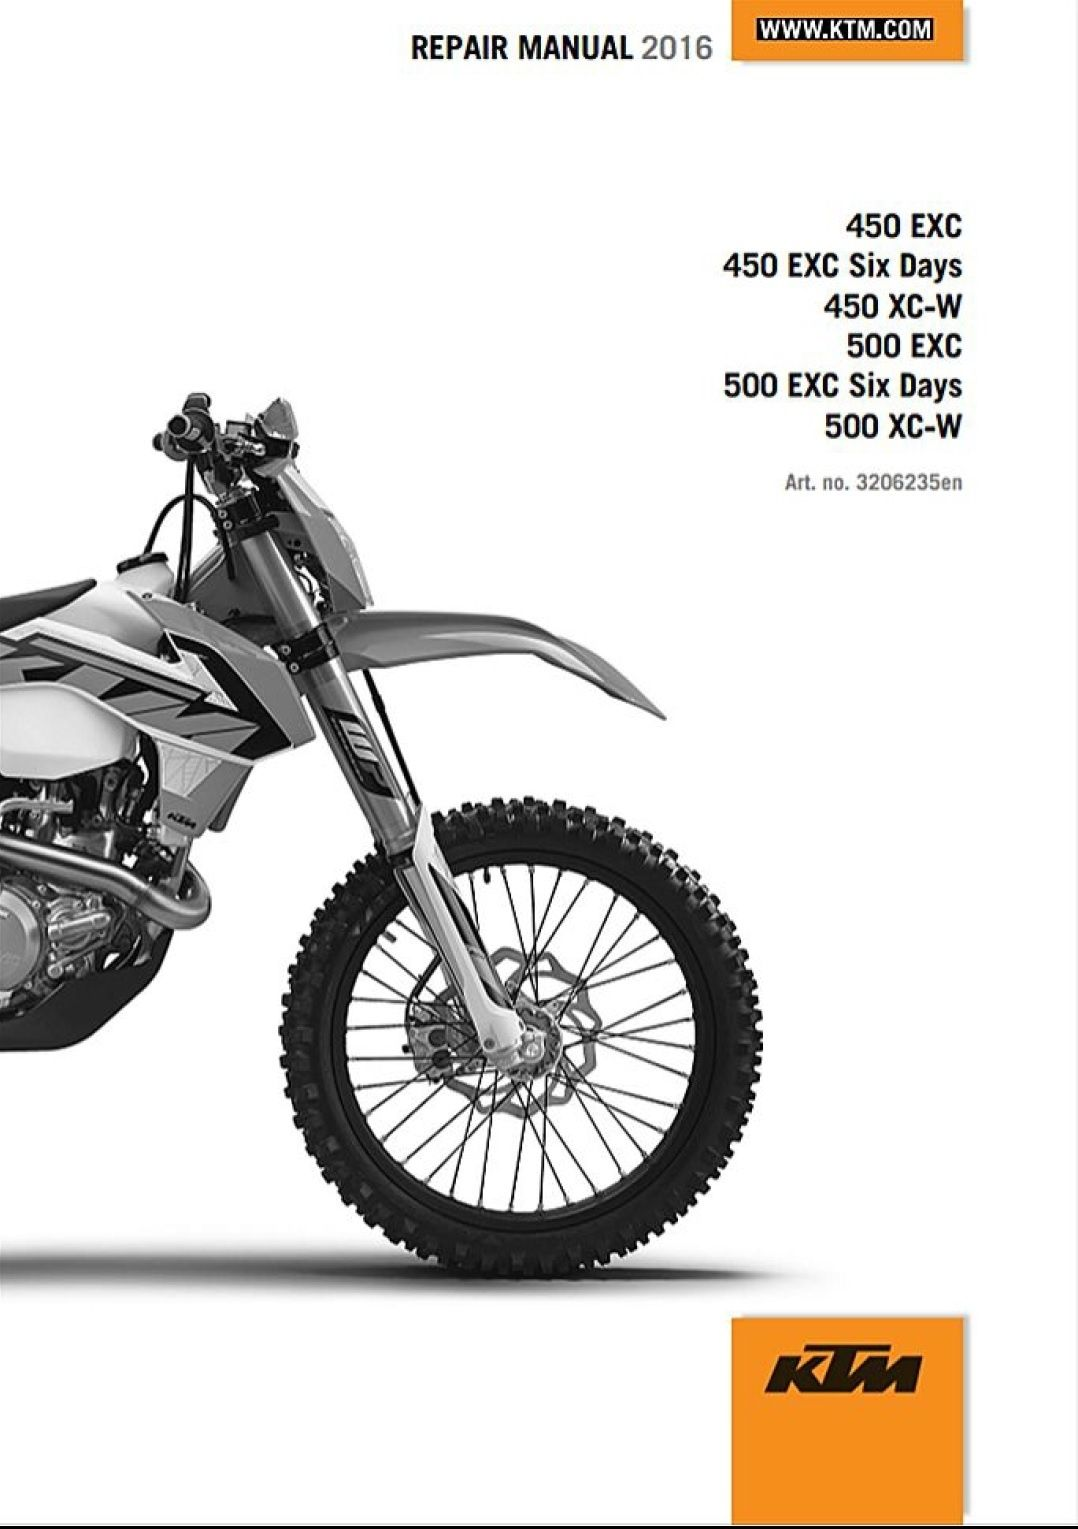 2016 ktm 450 500 exc xc w 6days service repair manual rh pinterest com 2005 ktm 450 exc repair manual pdf 2005 KTM 525 SX